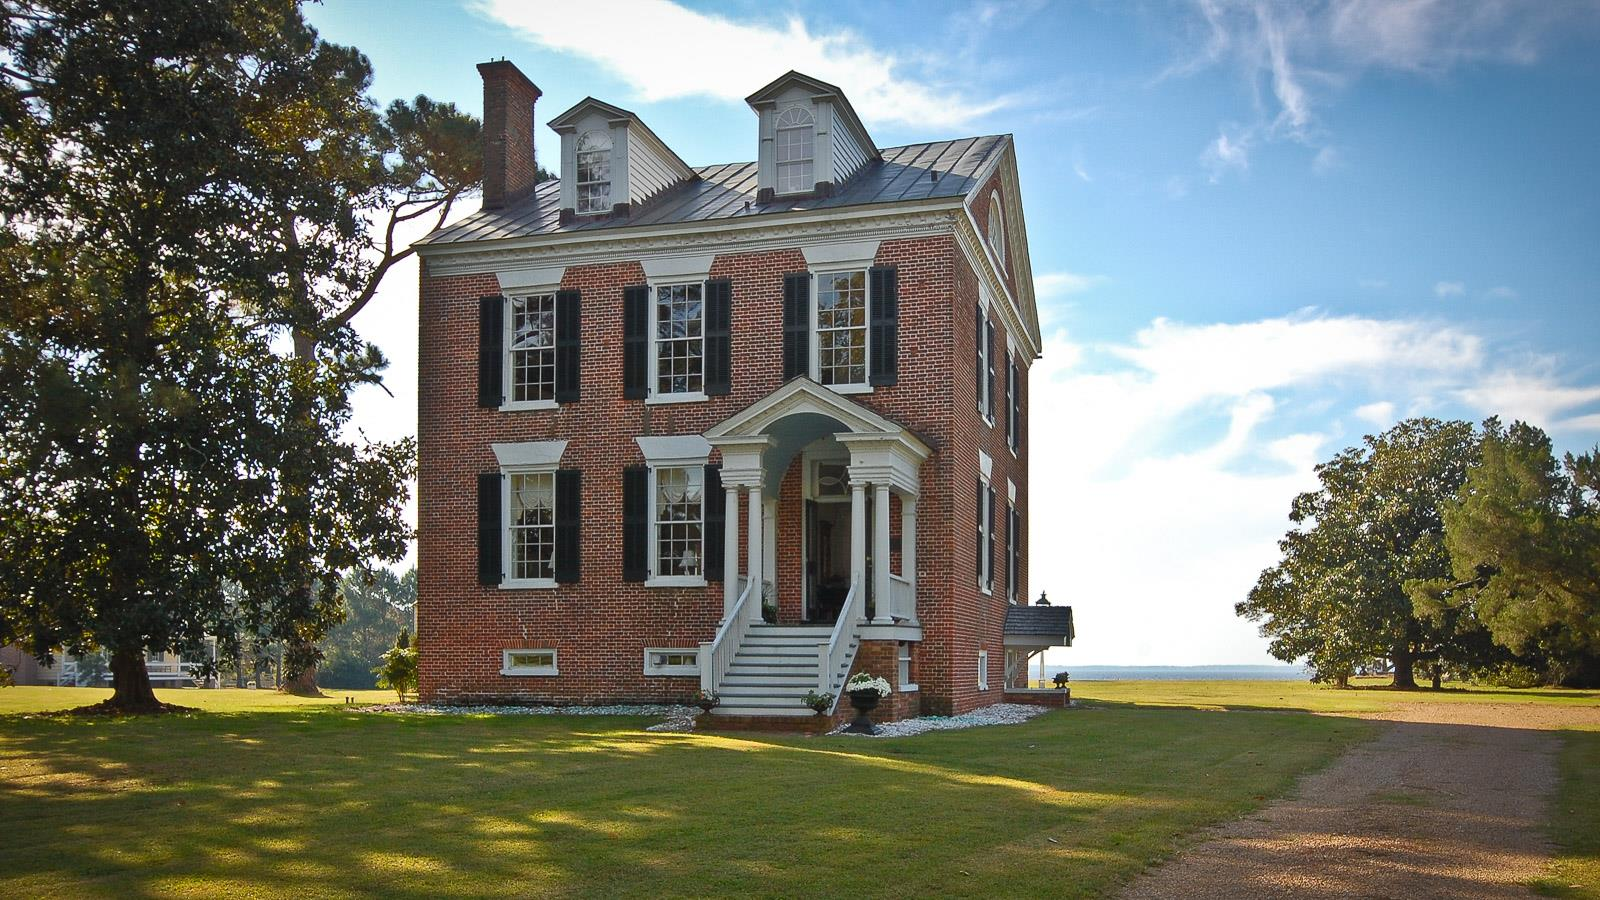 Mulberry Hill, Edenton, North Carolina